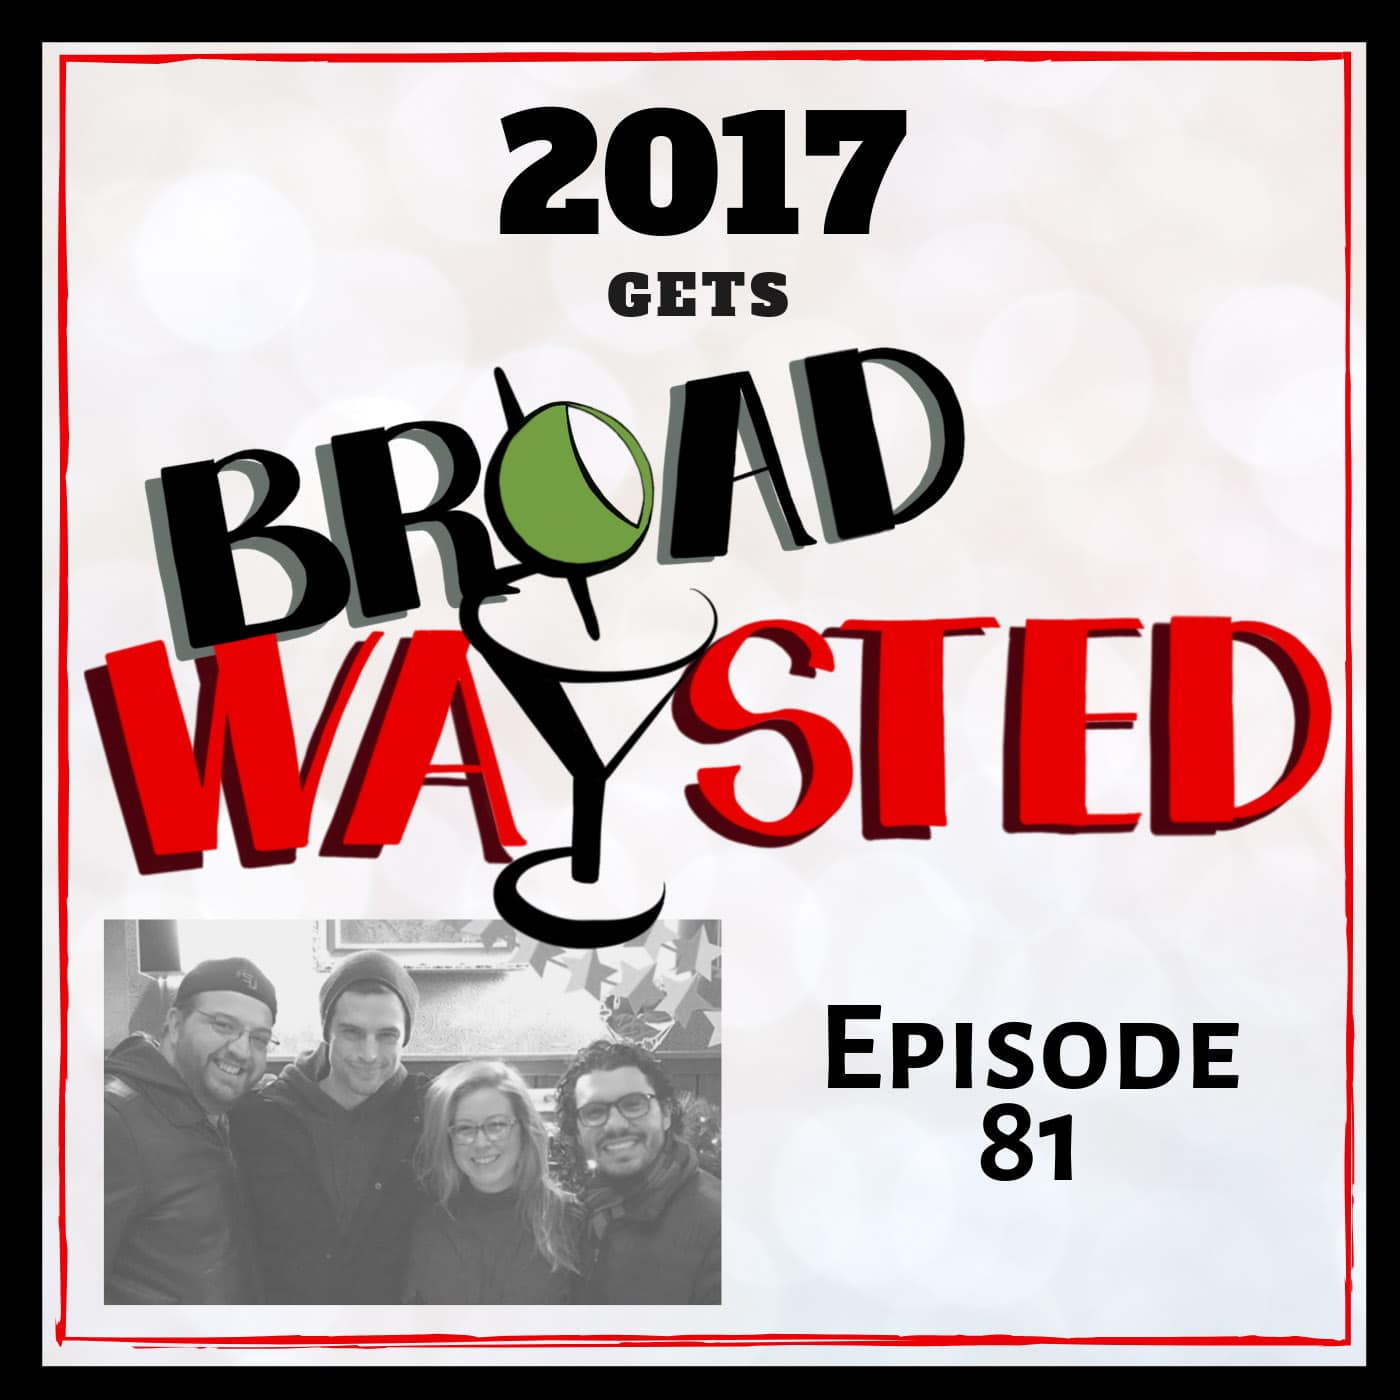 Broadwaysted Ep 81 2017